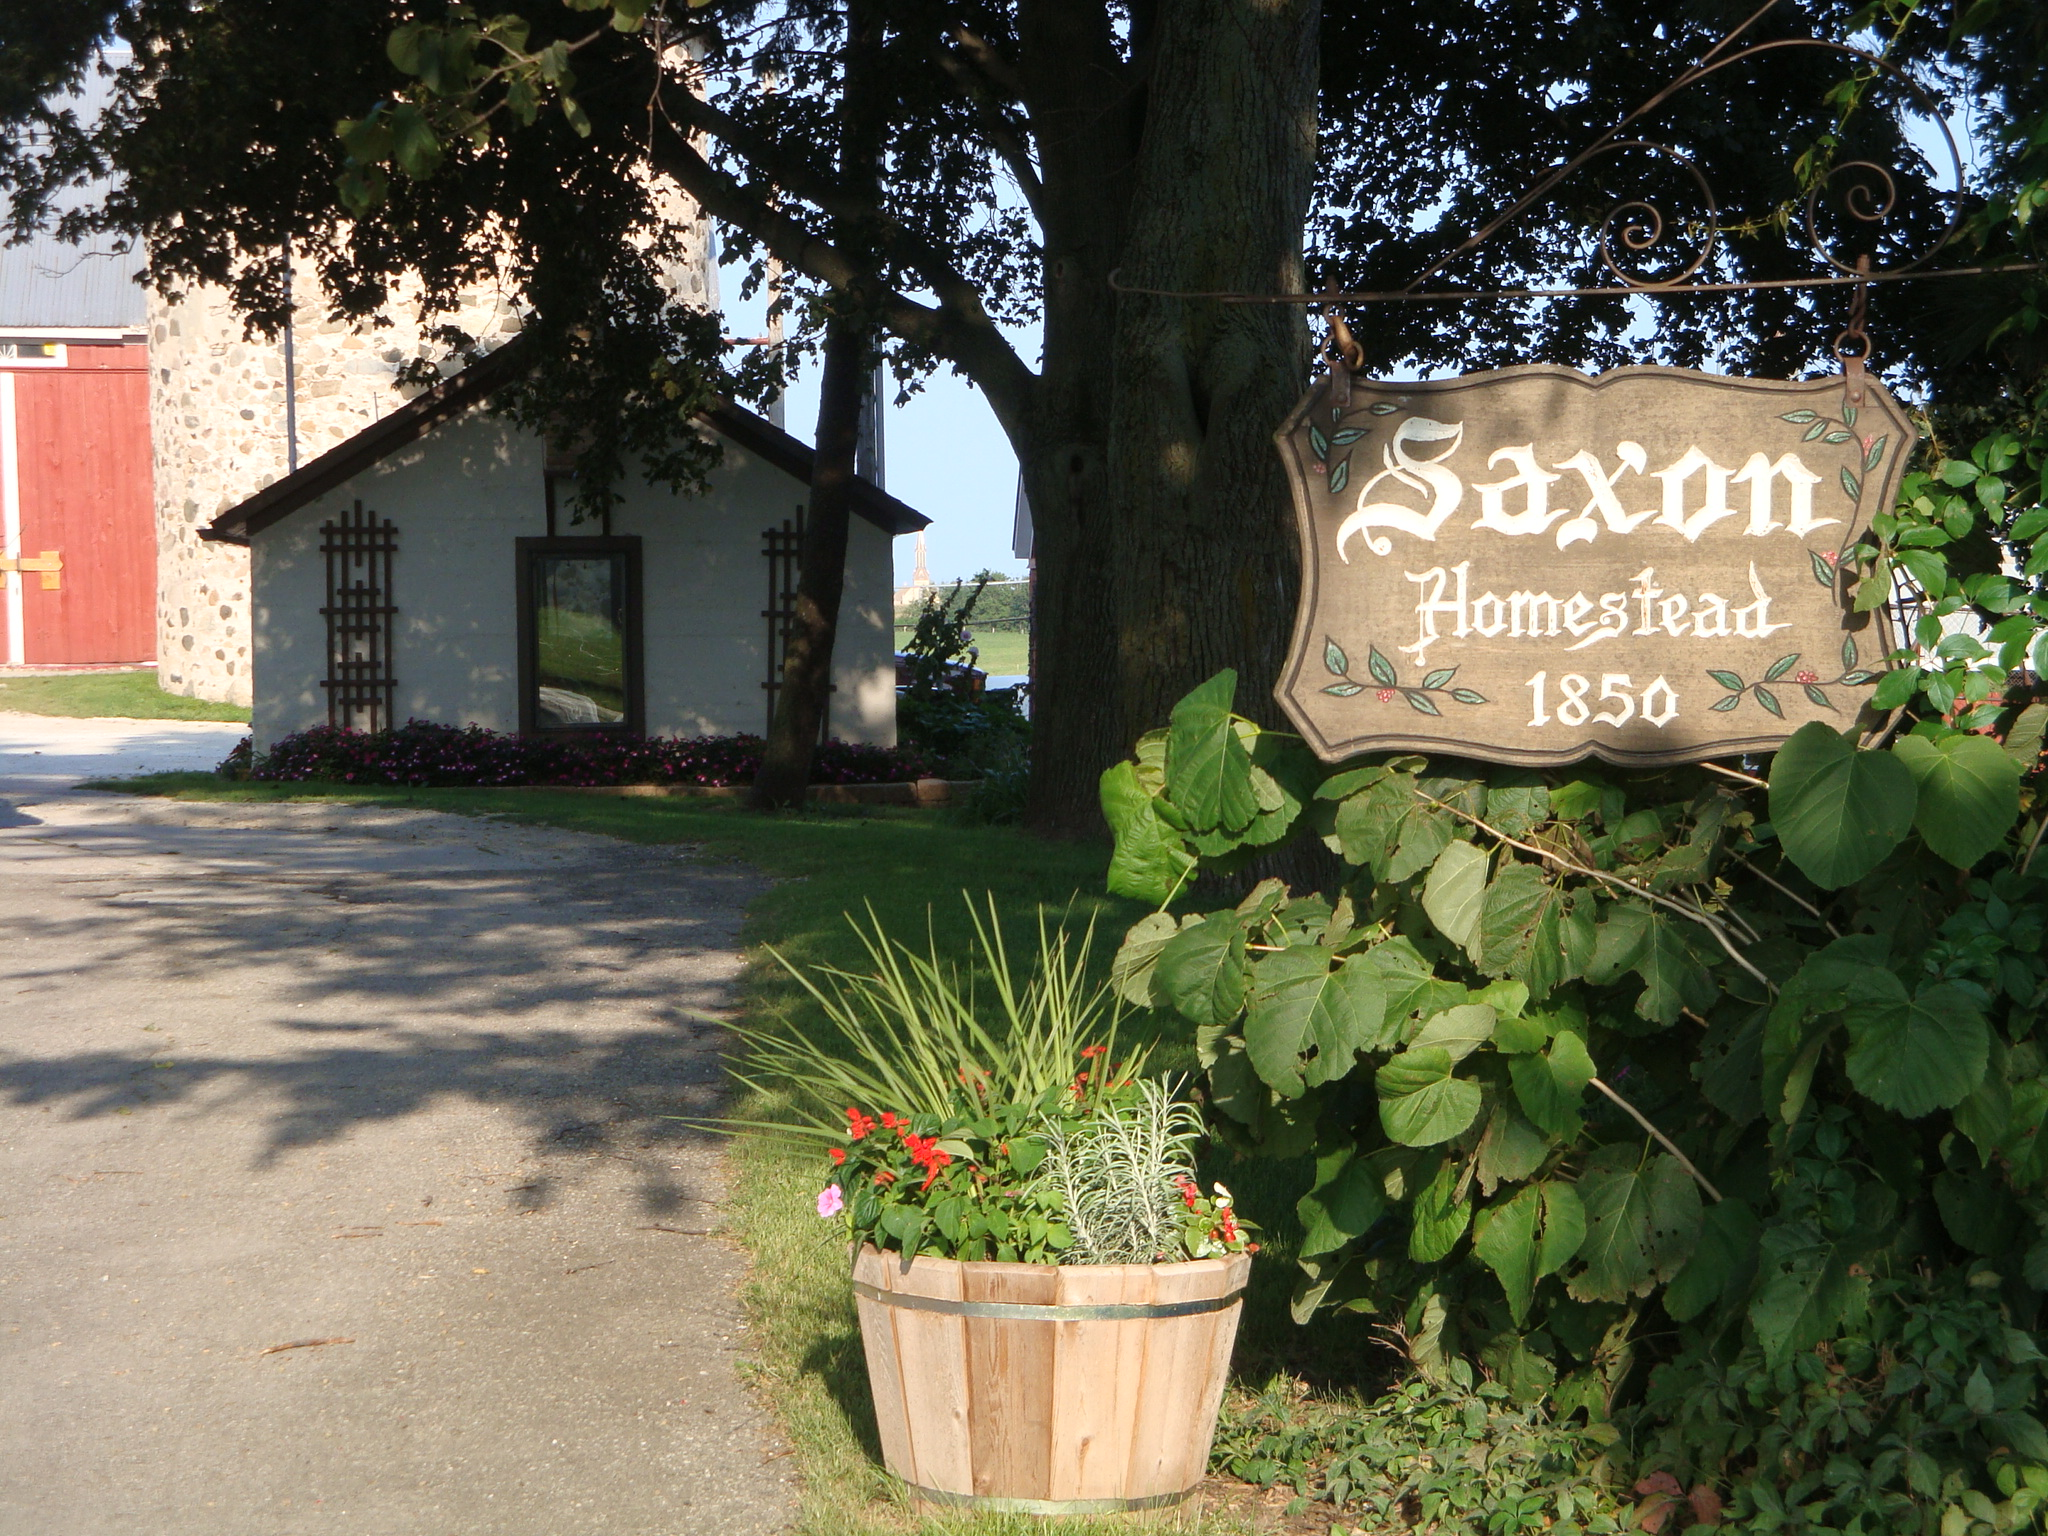 Welcome to Saxon Homestead Farm!